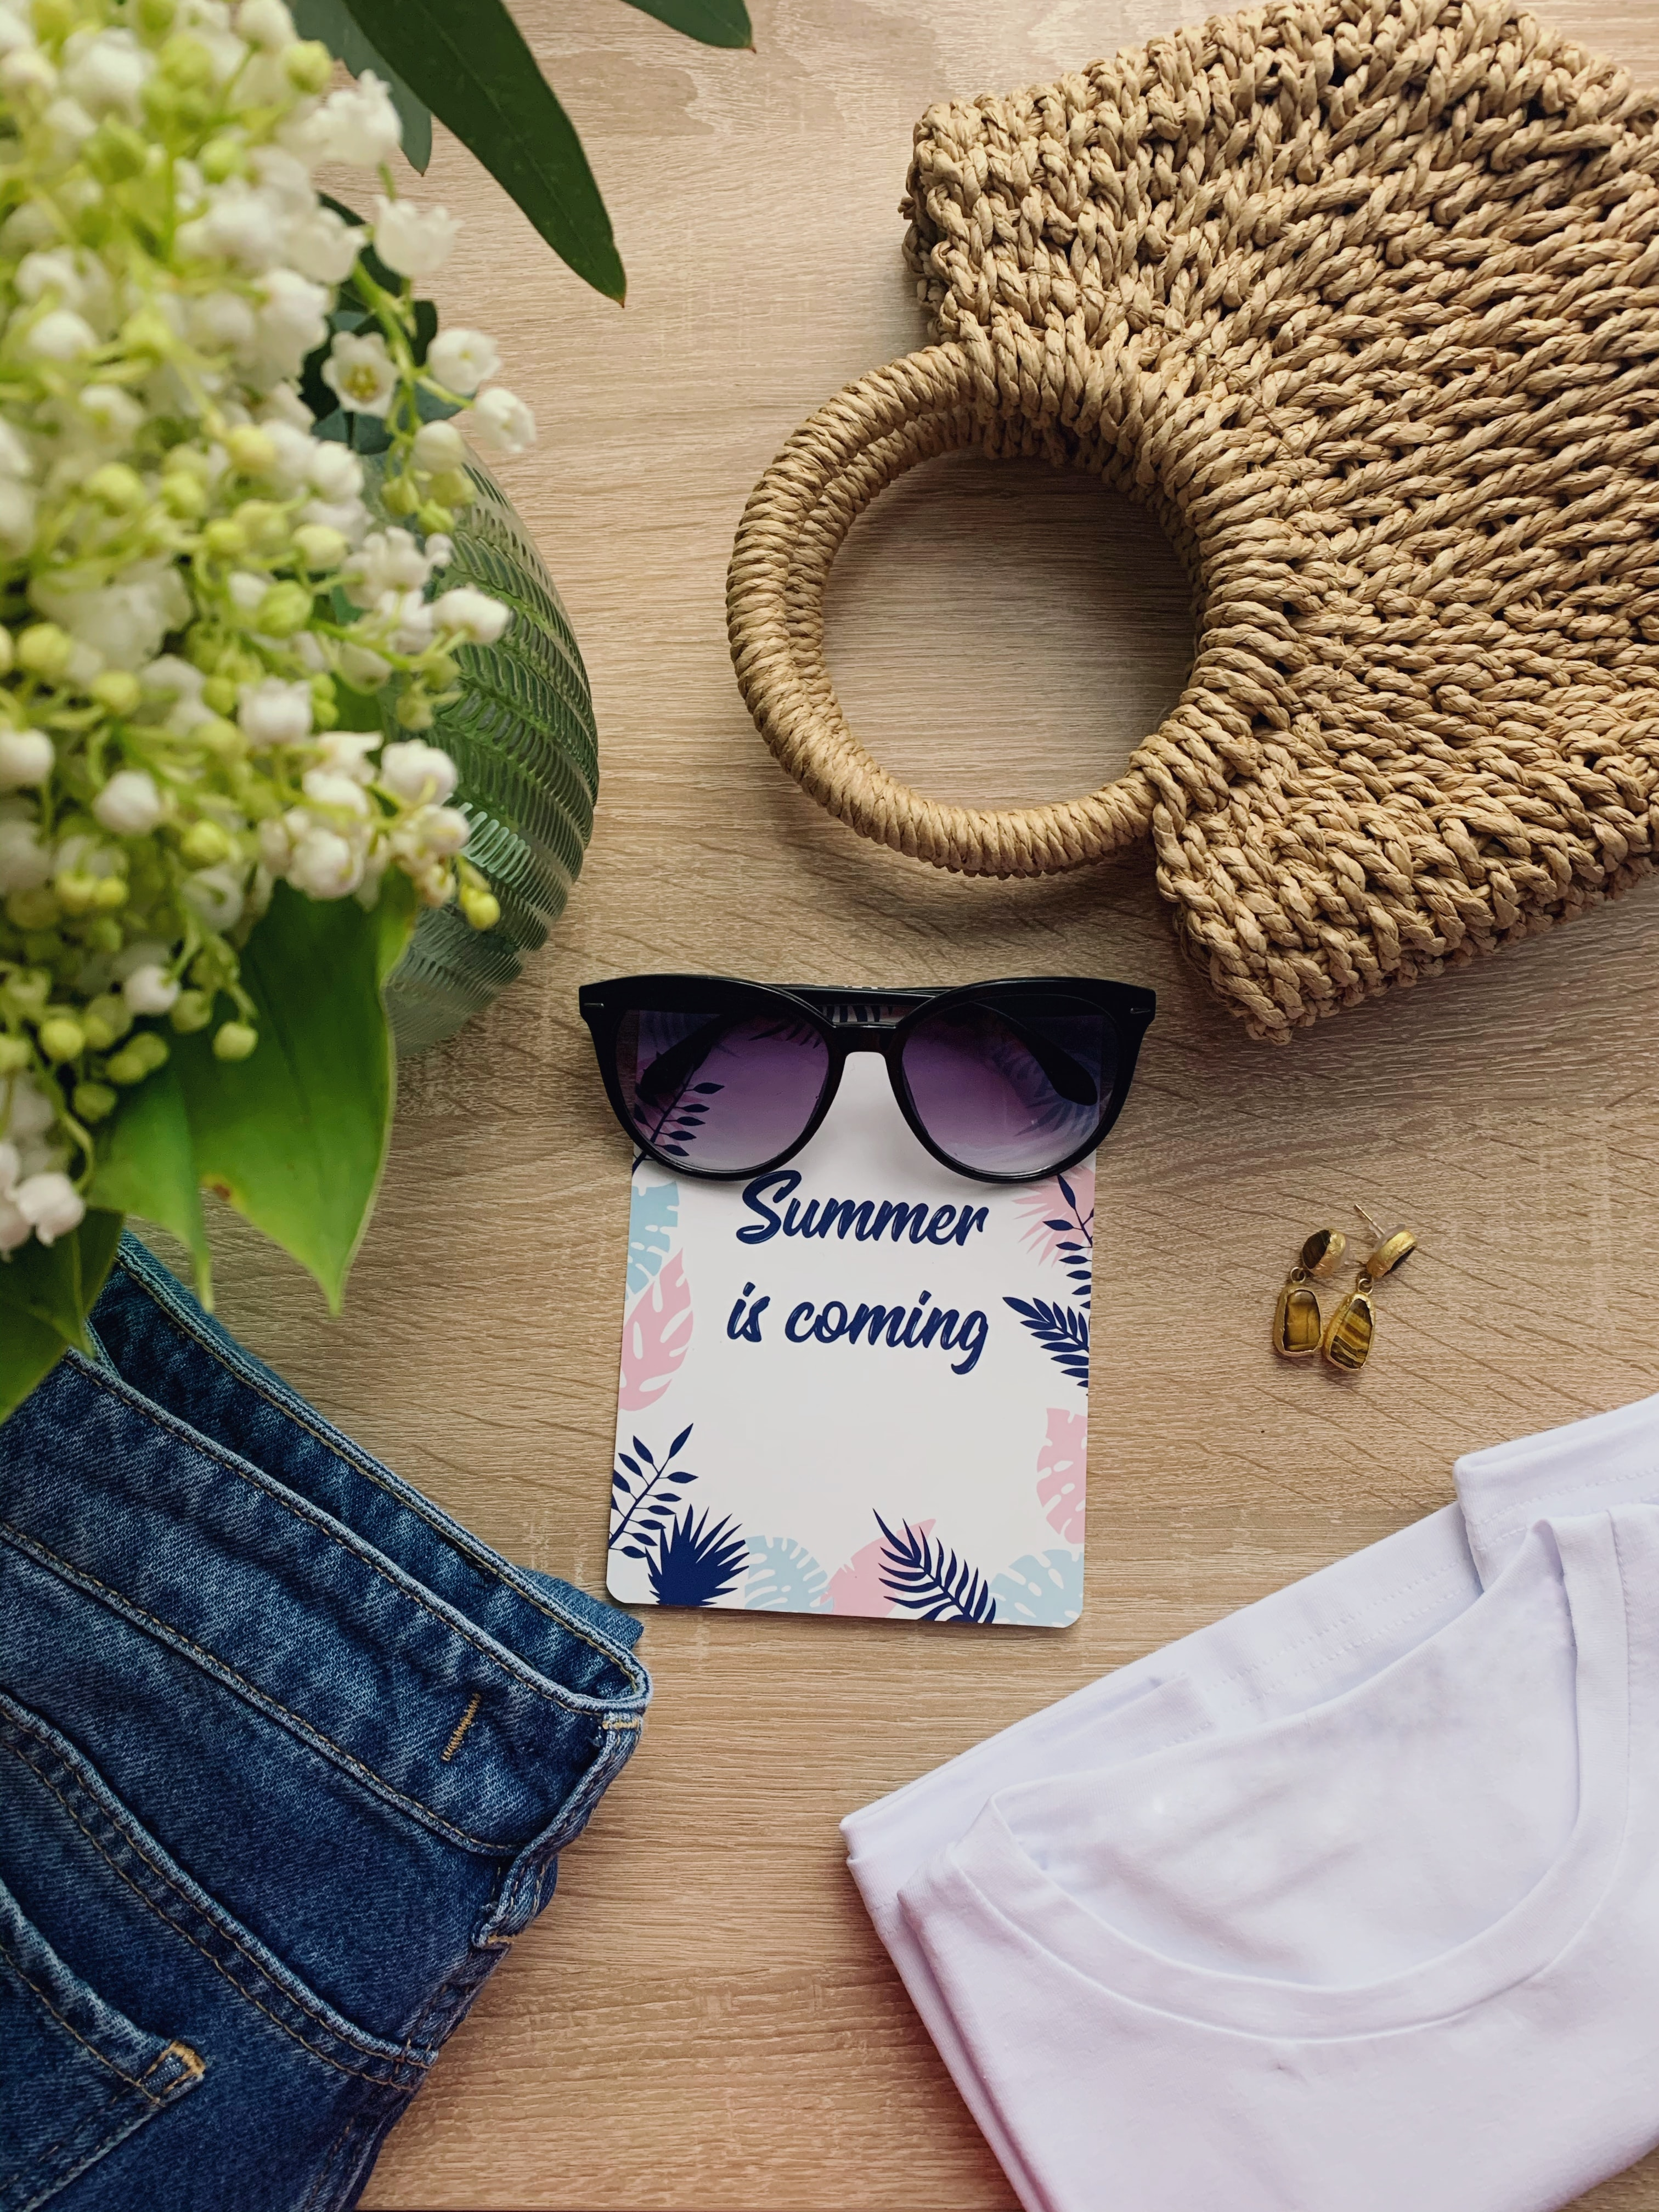 113788 download wallpaper Words, Summer, Inscription, Glasses, Spectacles, Bag, Clothing, Flowers screensavers and pictures for free